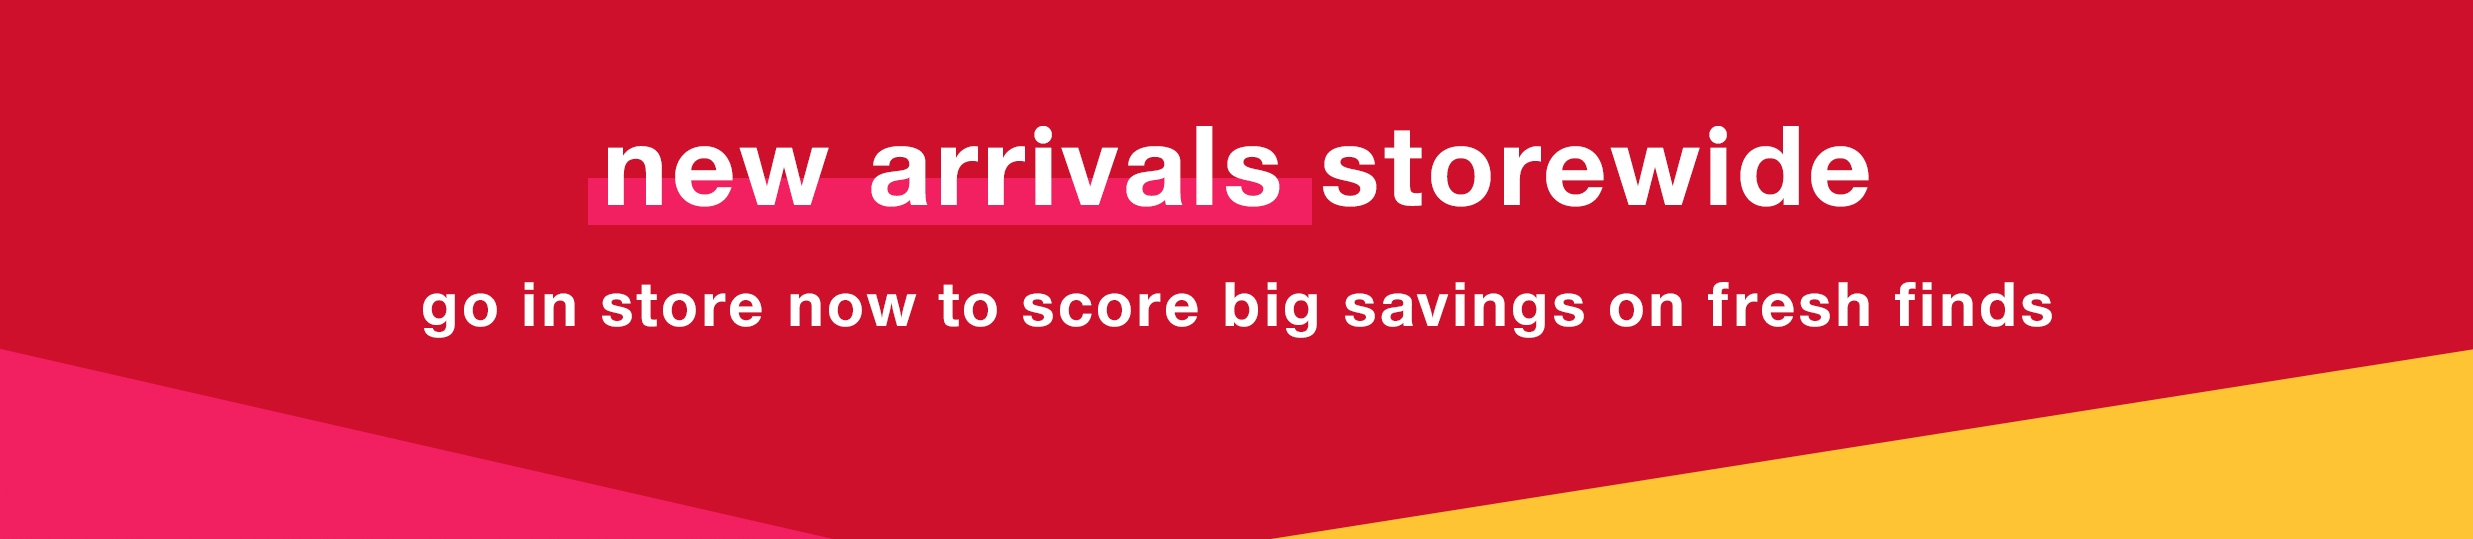 New Arrivals Storewide: Go In Store Now to Score Big Savings on Fresh Finds